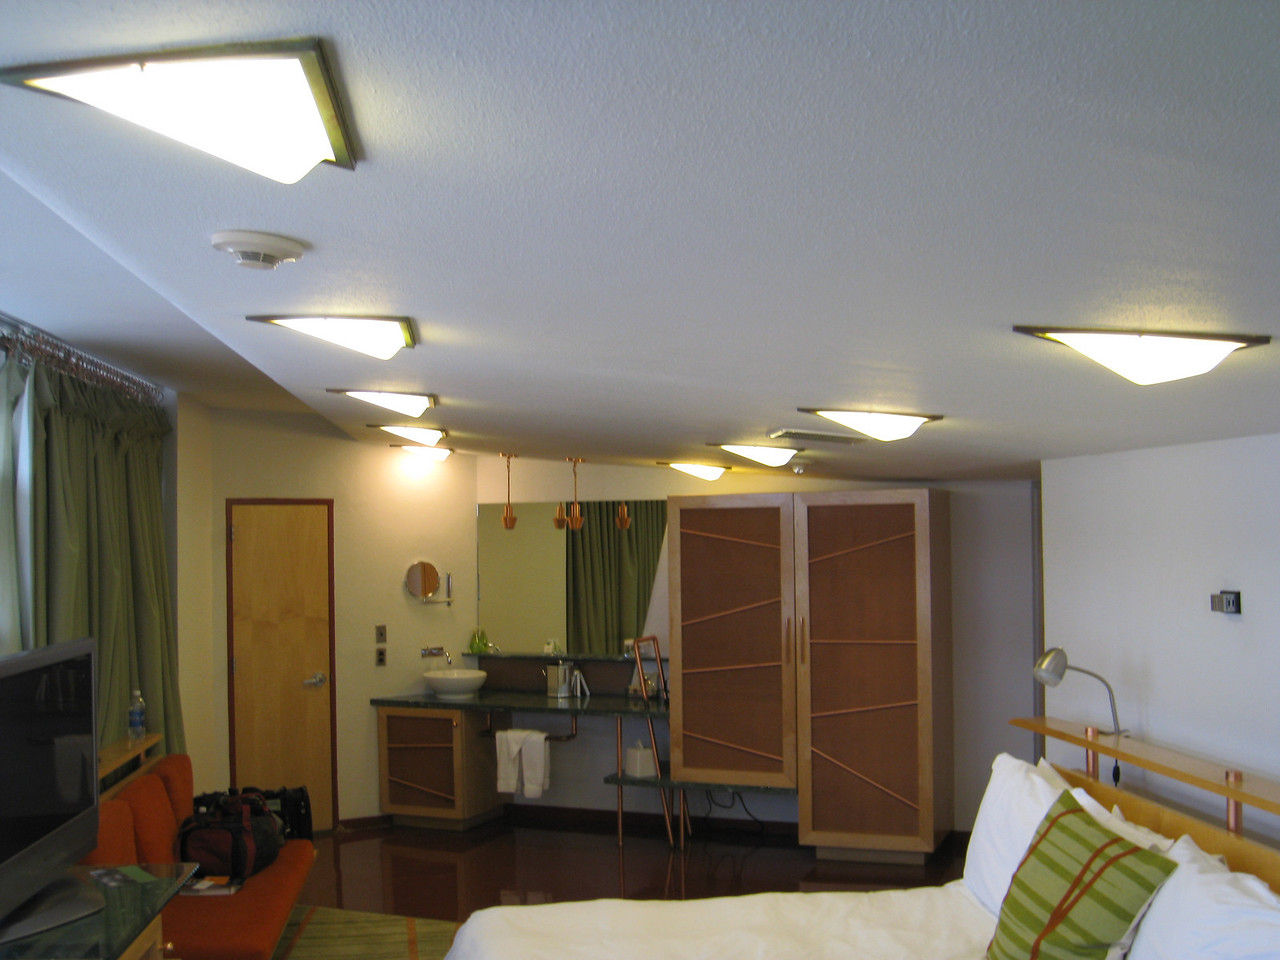 Note the custom light fixtures created for the building in our room at the Inn at Price Tower. Room 134 (13th floor).